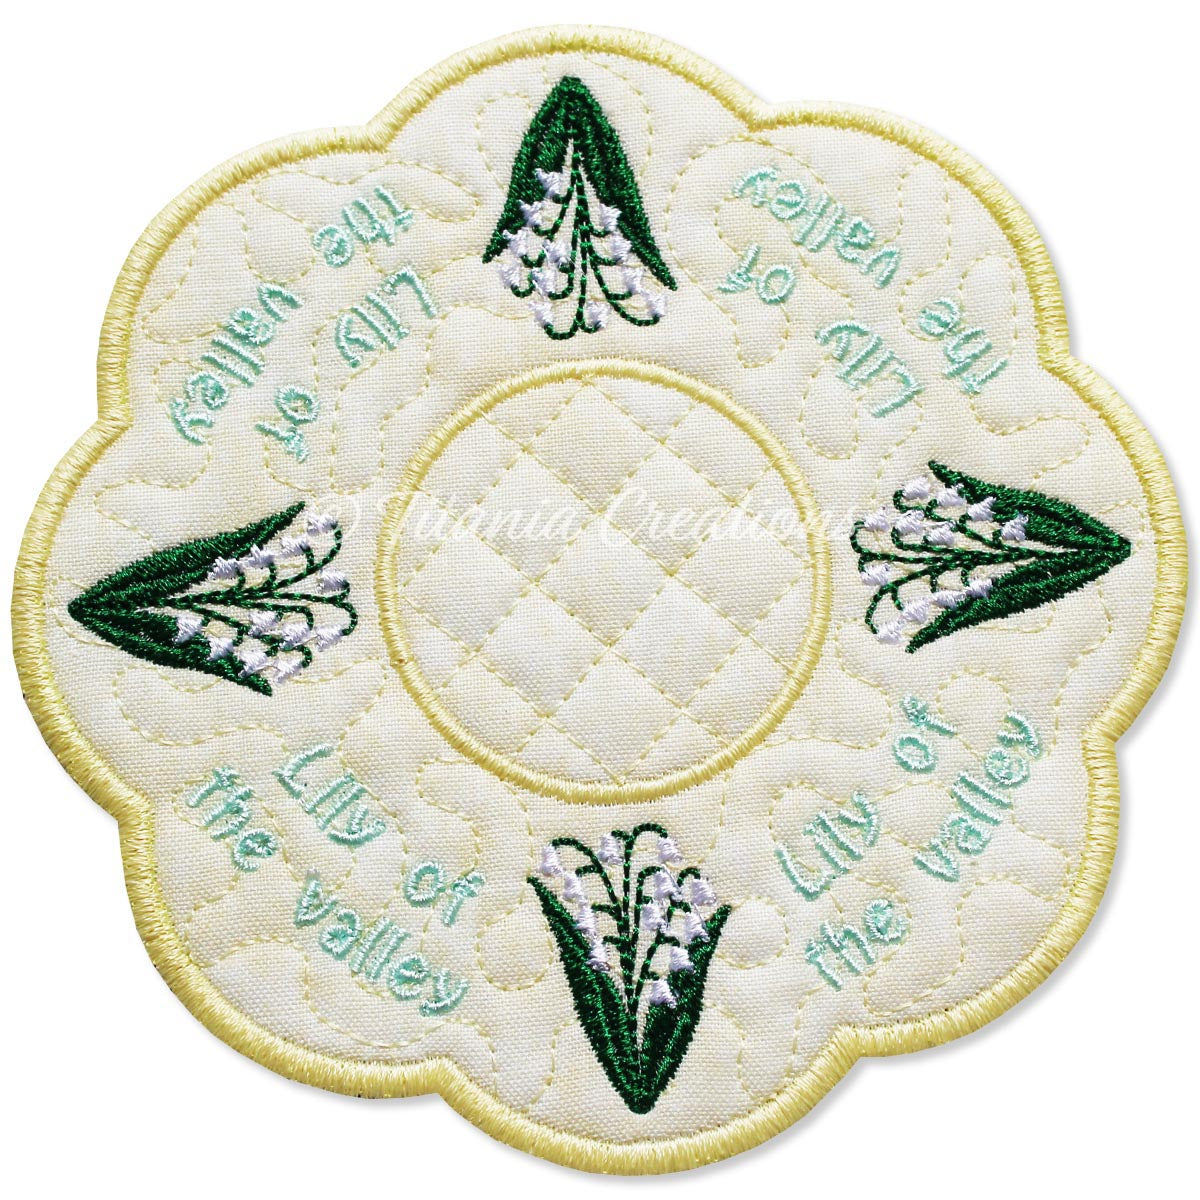 ITH Lily of The Valley Flower for May Candle Mat 5x5 6x6 7x7 8x8